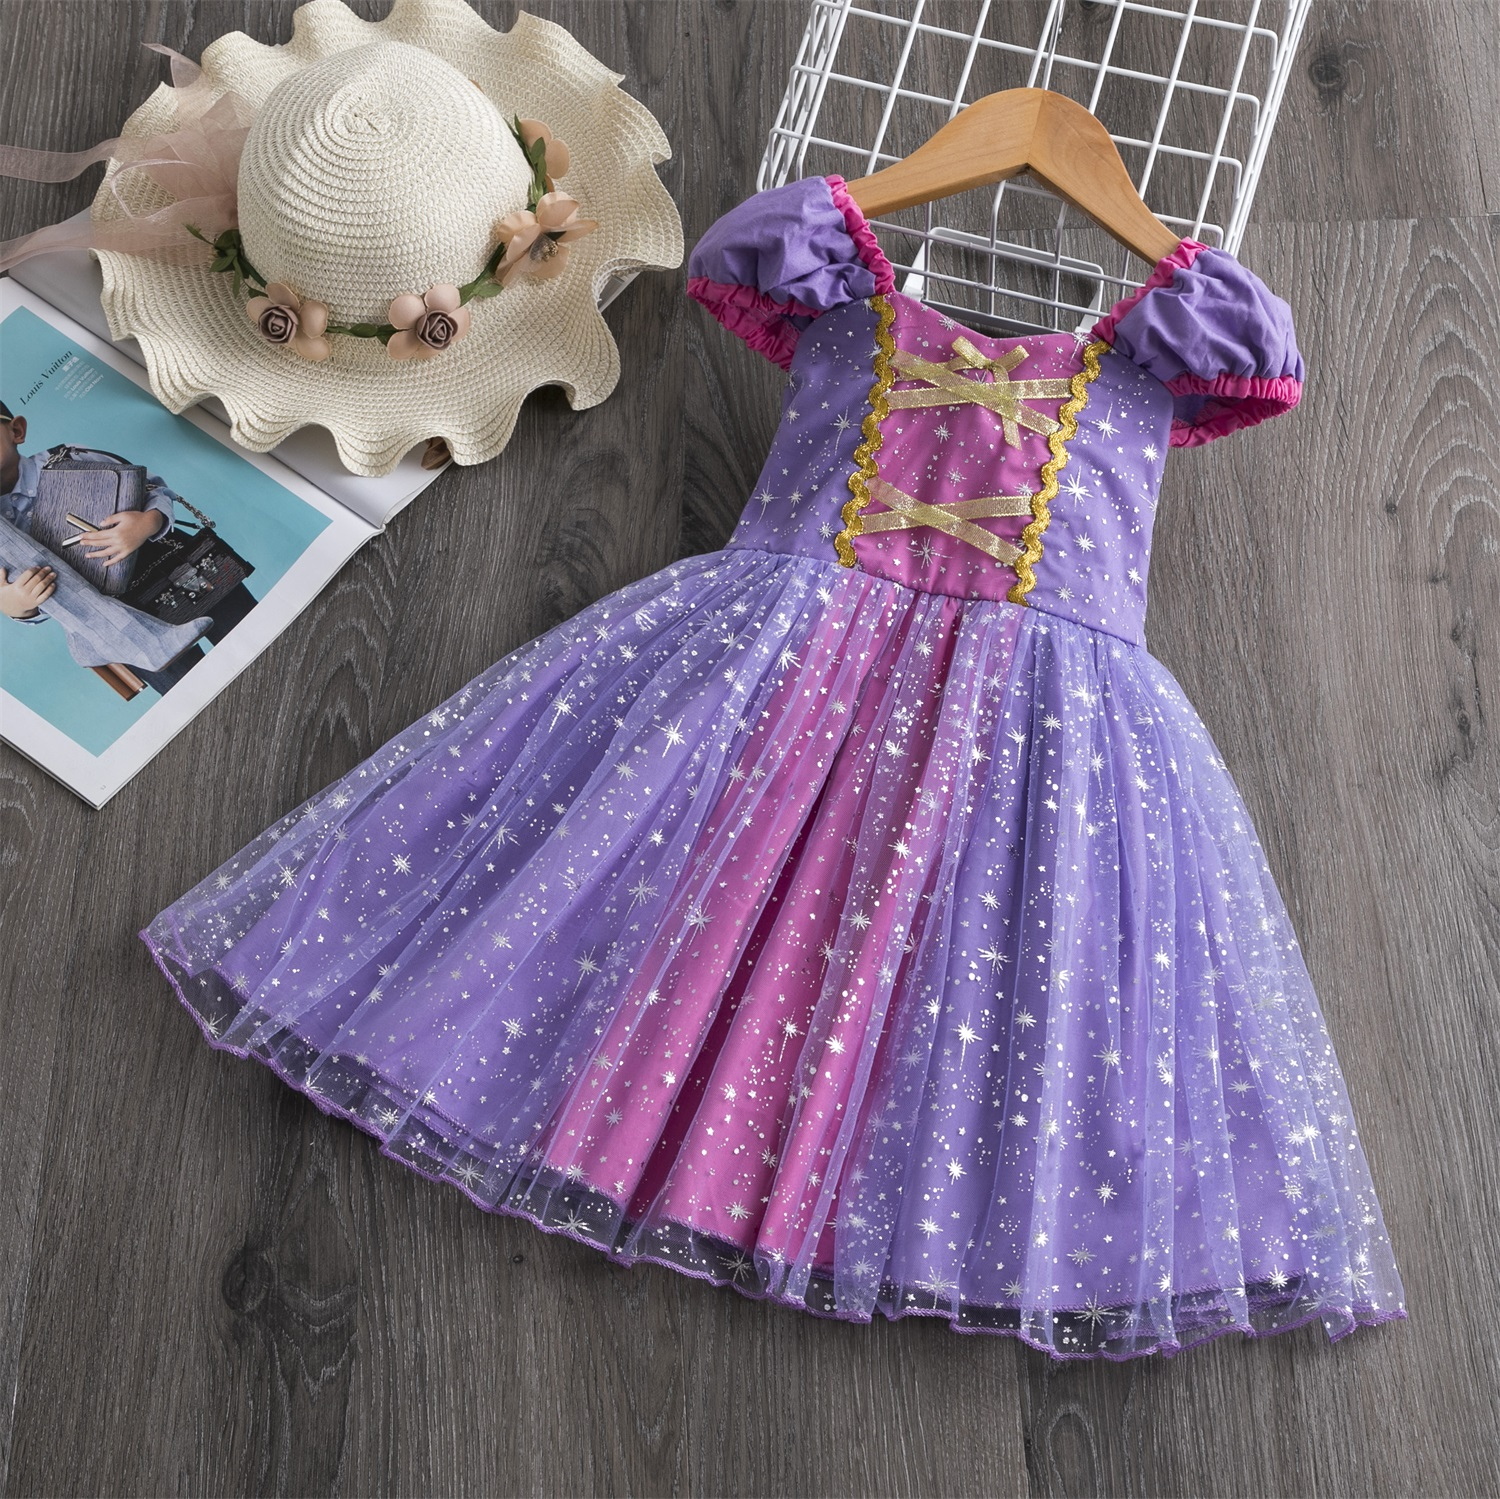 Baby Girls Rapunzel Princess Dress Toddler Girl Halloween Cosplay Clothes Infant Birthday Party Dress Up Costume for Kids